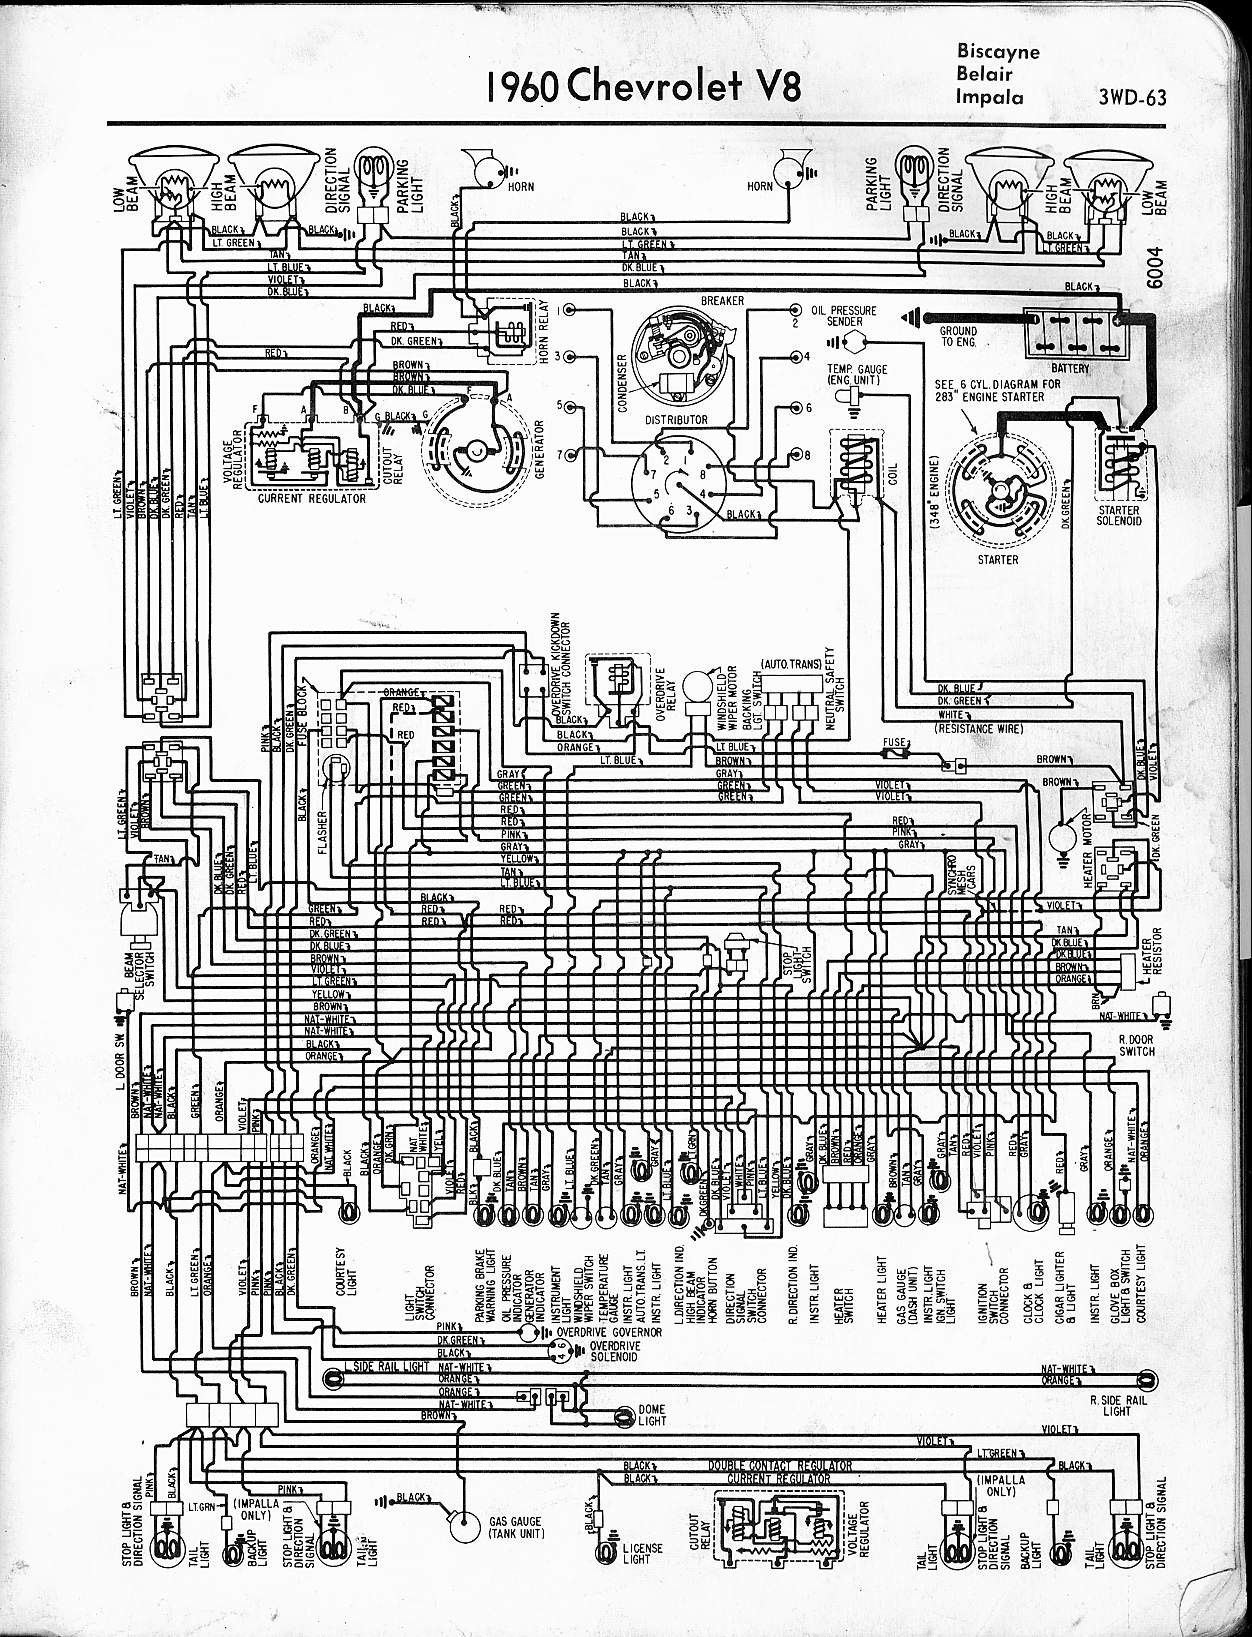 2005 Chevy Impala Engine Diagram 57 65 Chevy Wiring Diagrams Of 2005 Chevy  Impala Engine Diagram